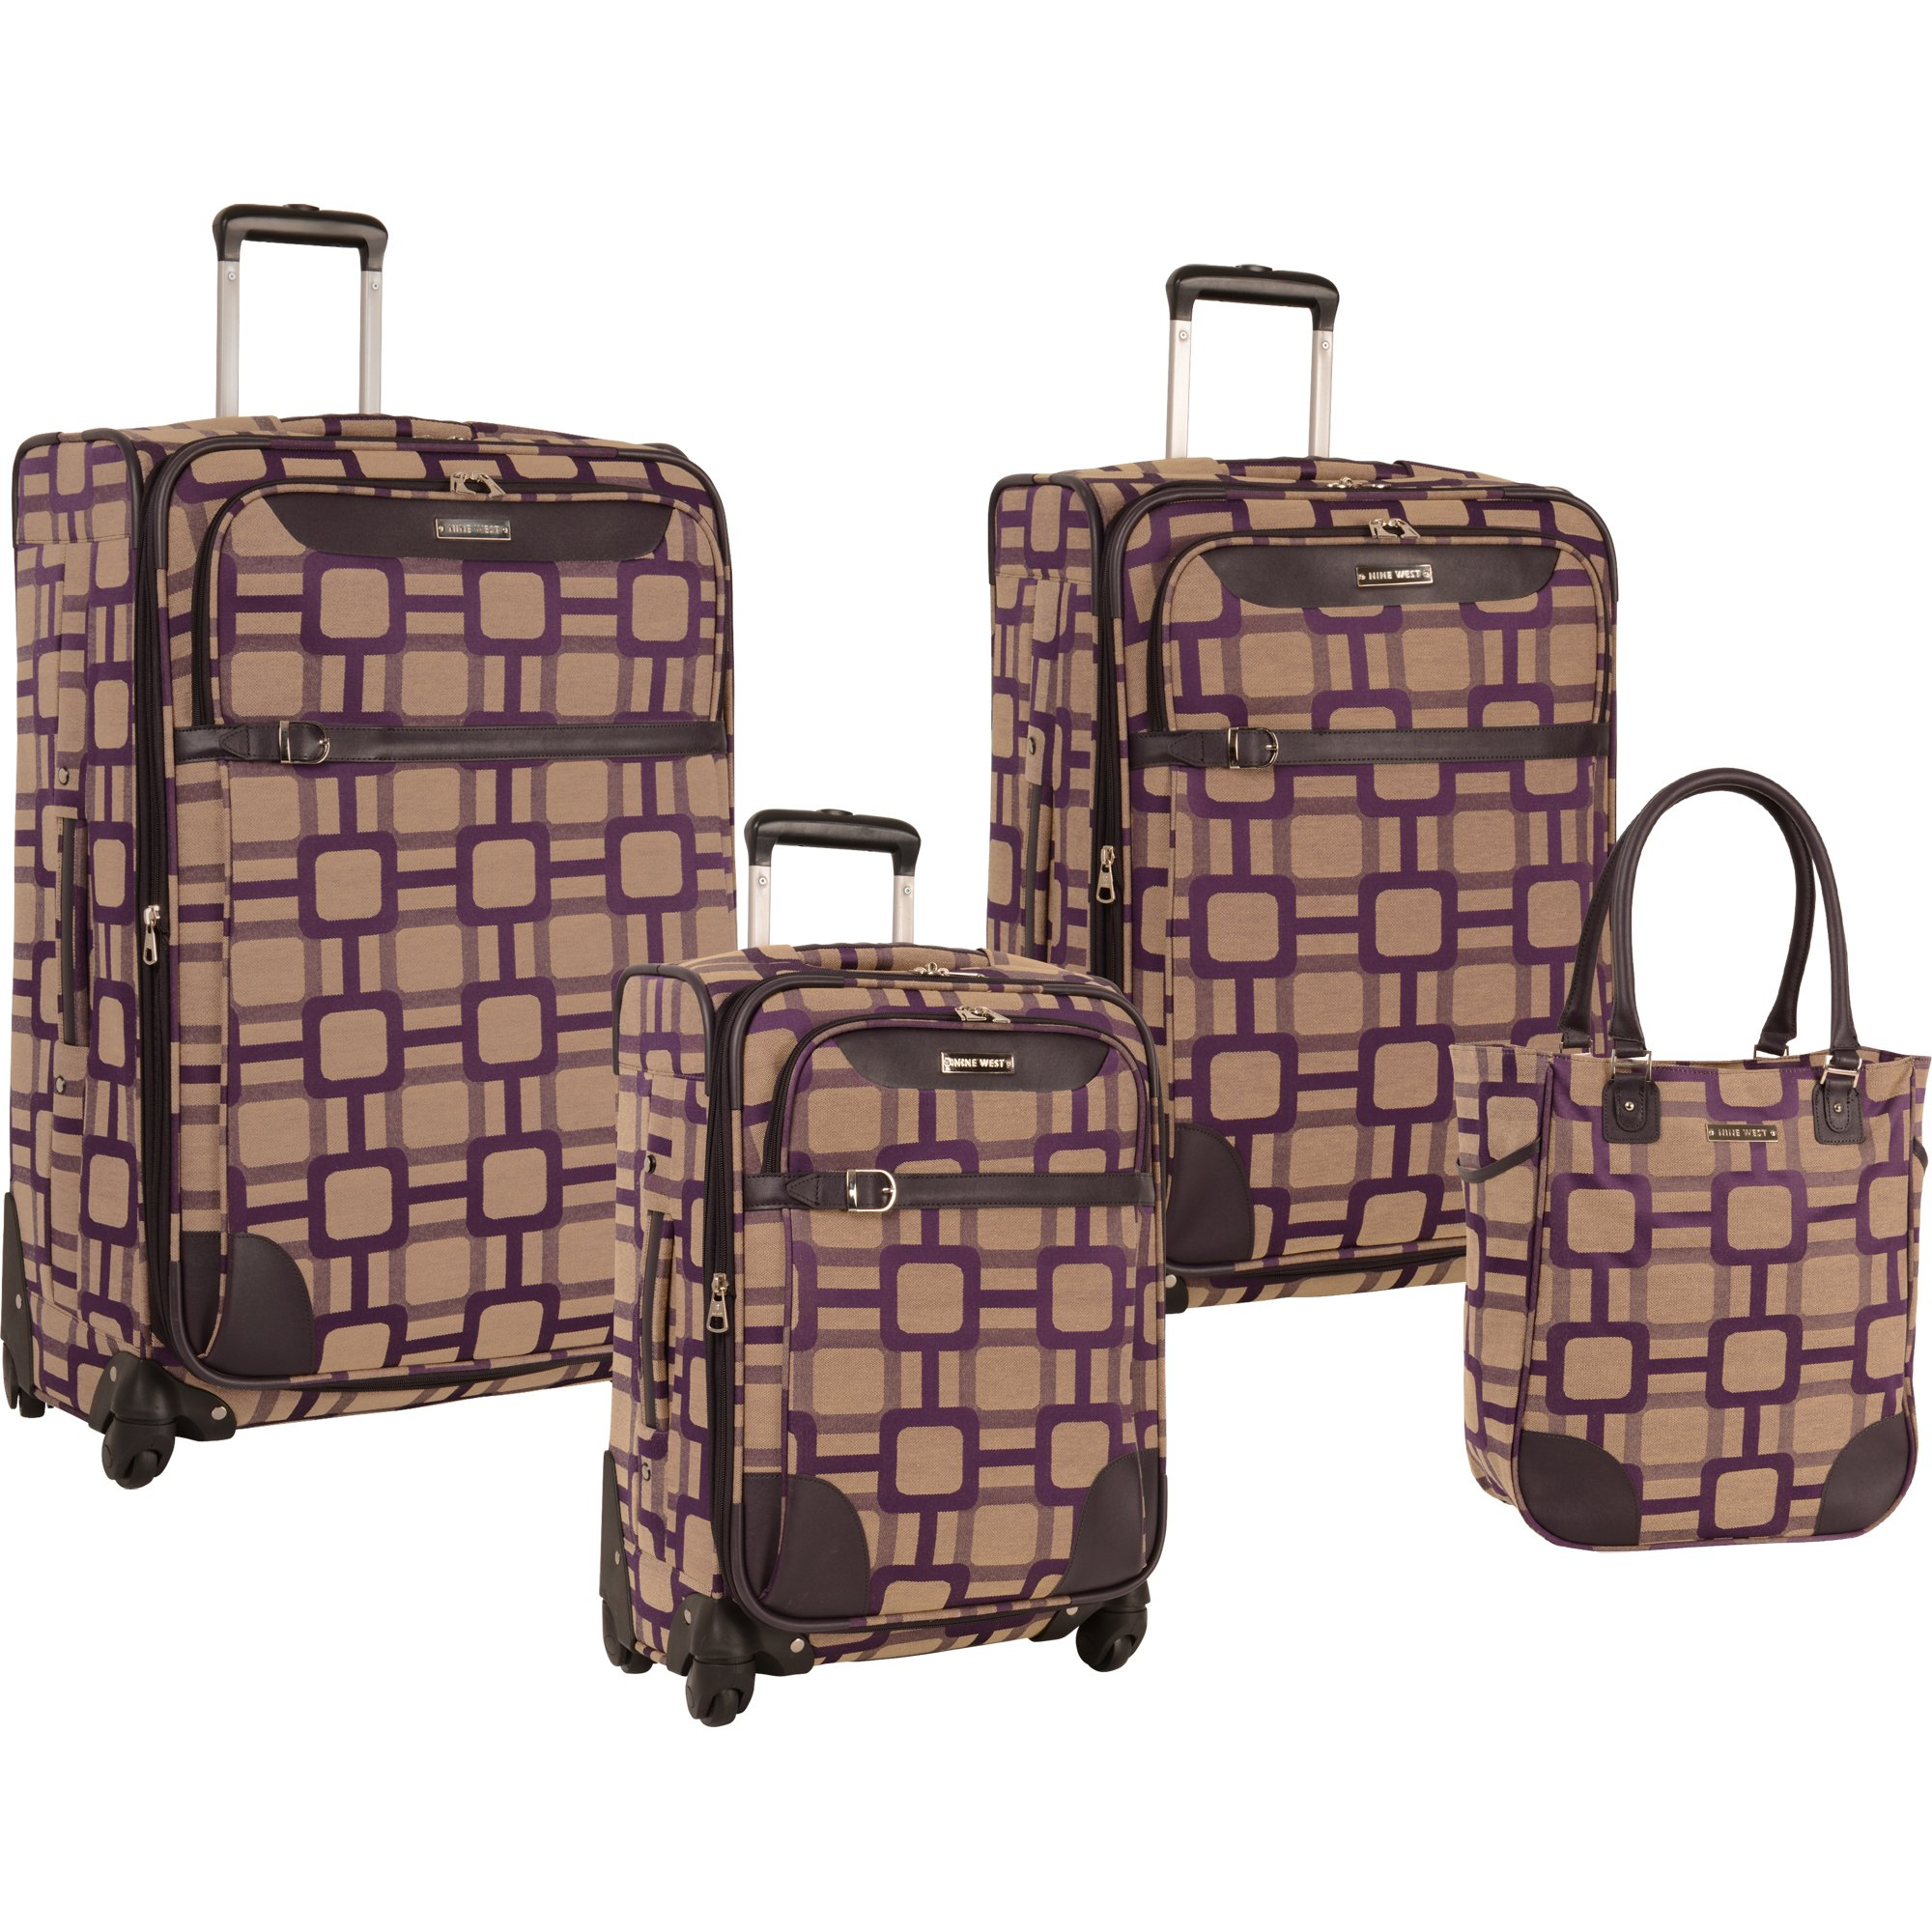 Ninewest Luggage Super Sign 4 Piece Luggage Set (16In/20In/24In/28In), Purple